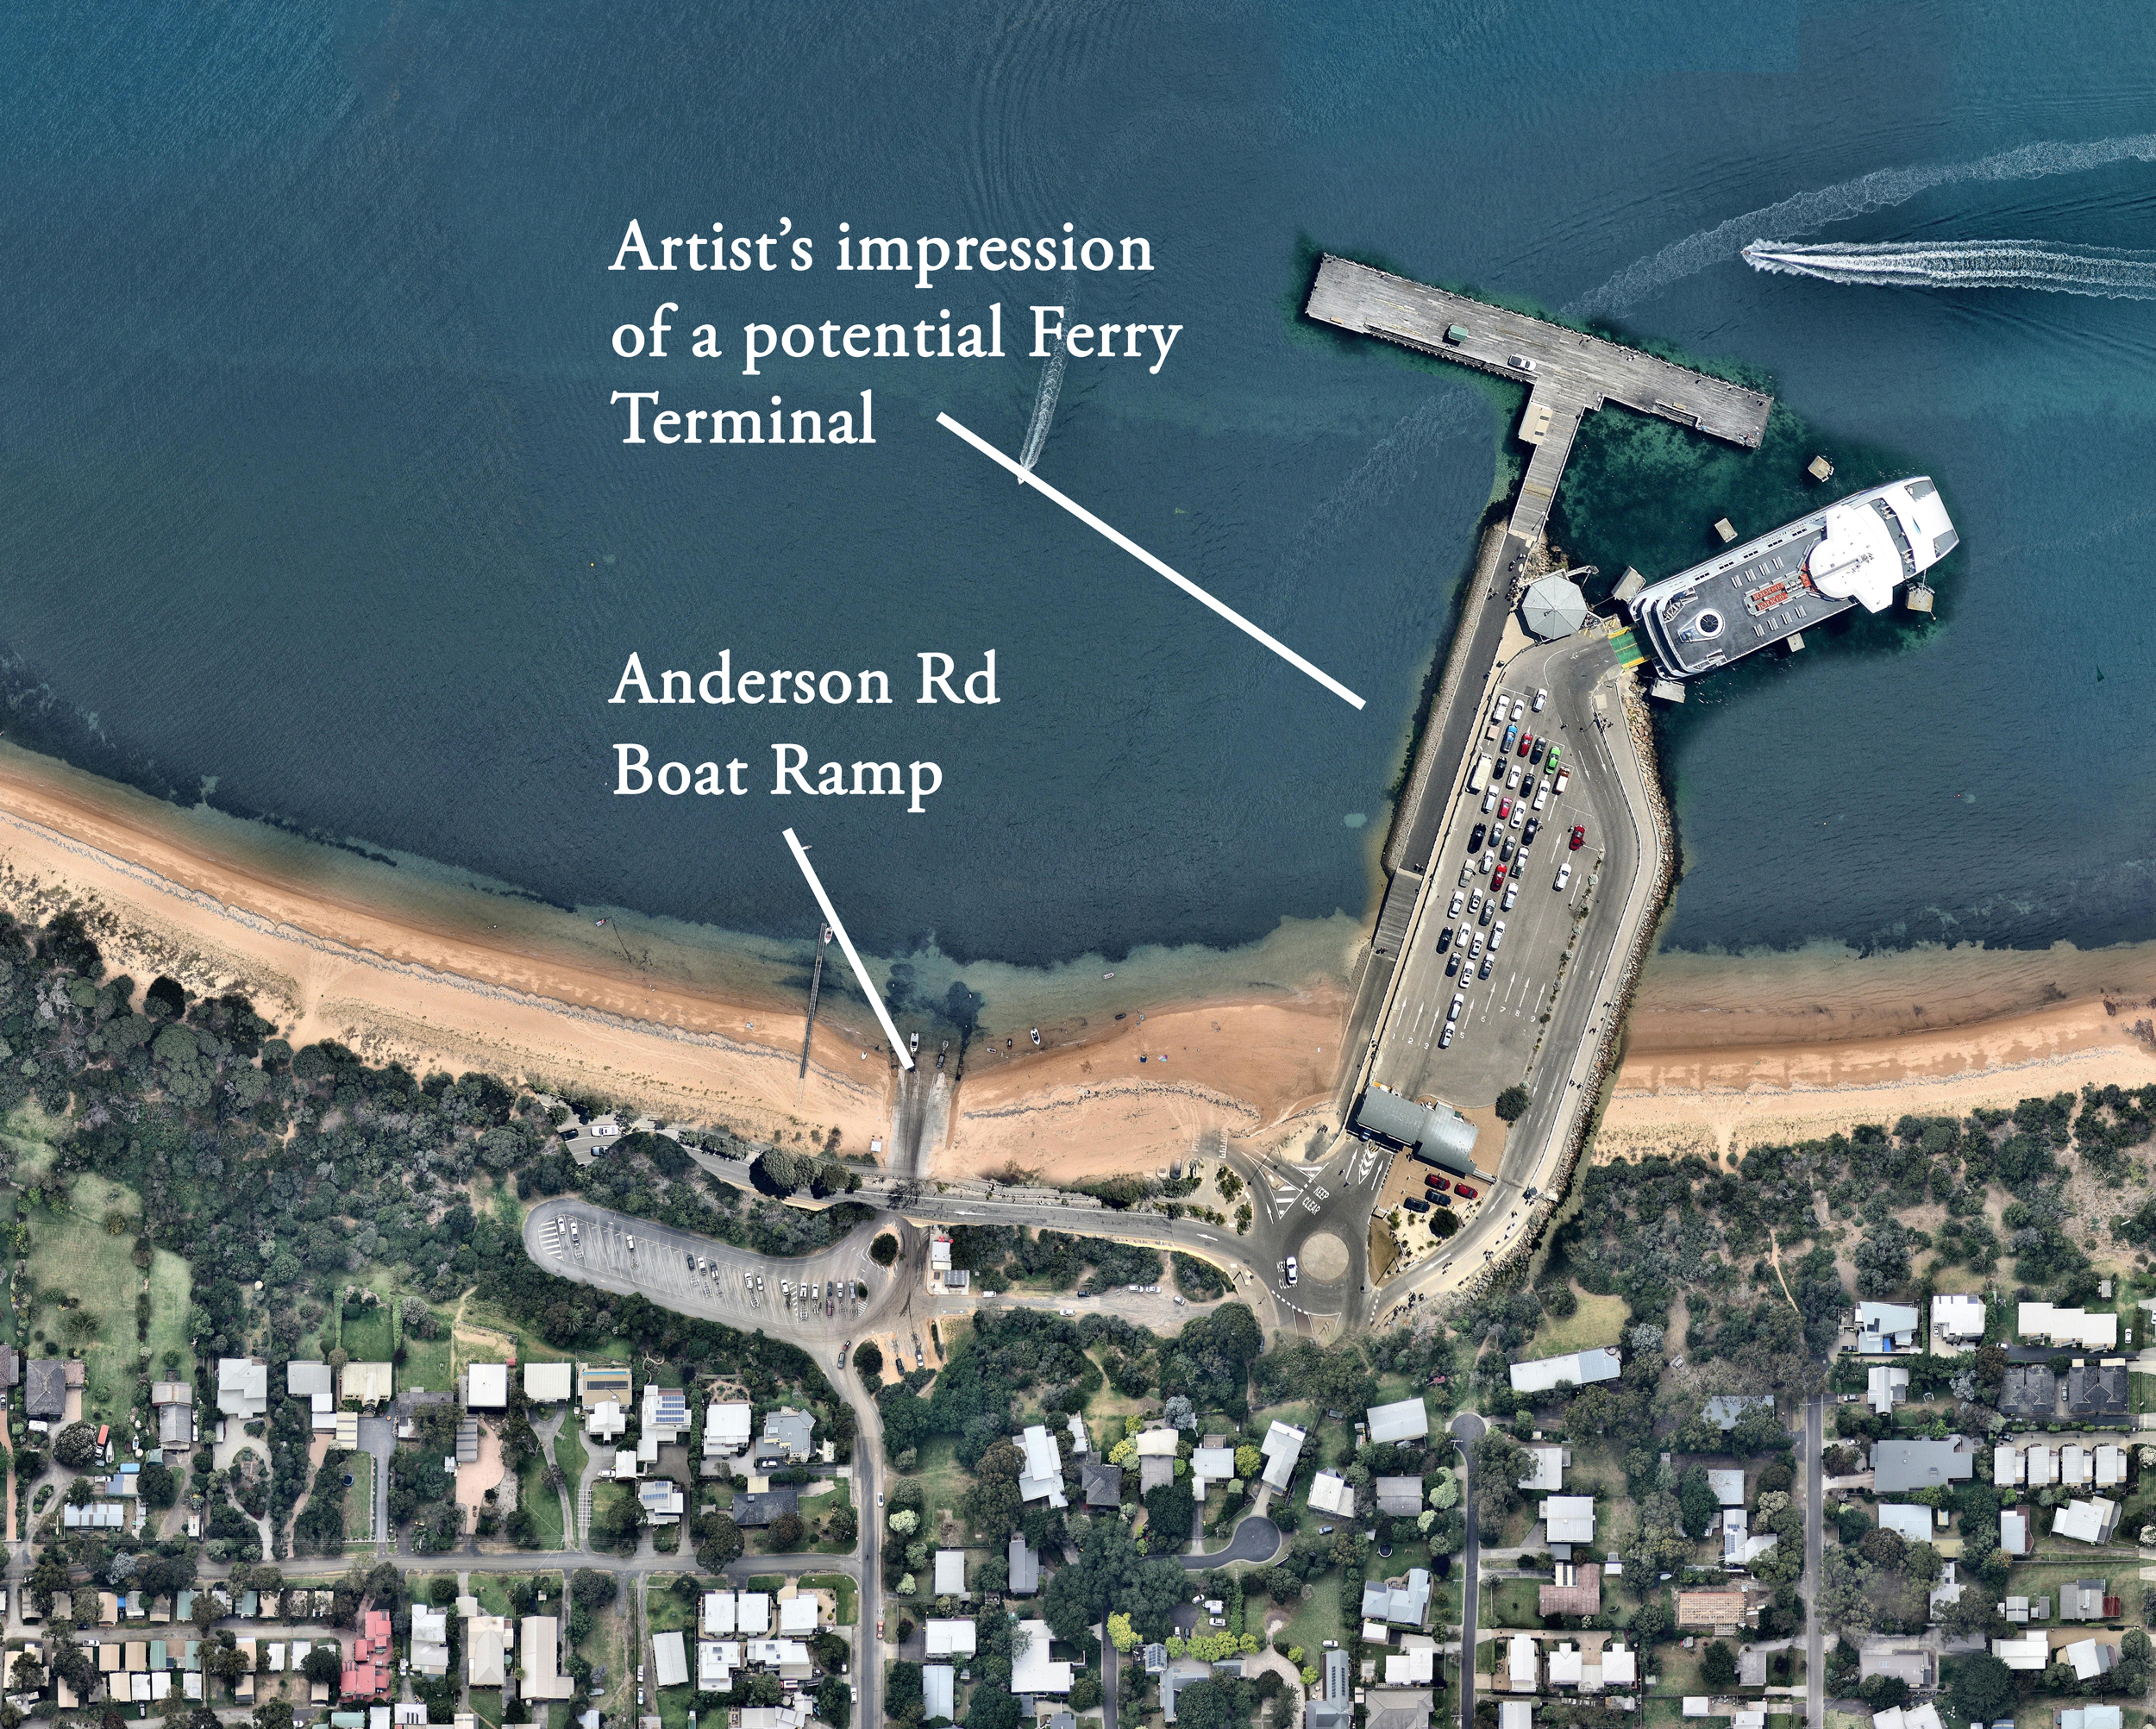 This is an artist's impression of what the proposed car ferry terminal could look like, based on the Sorrento car ferry terminal.